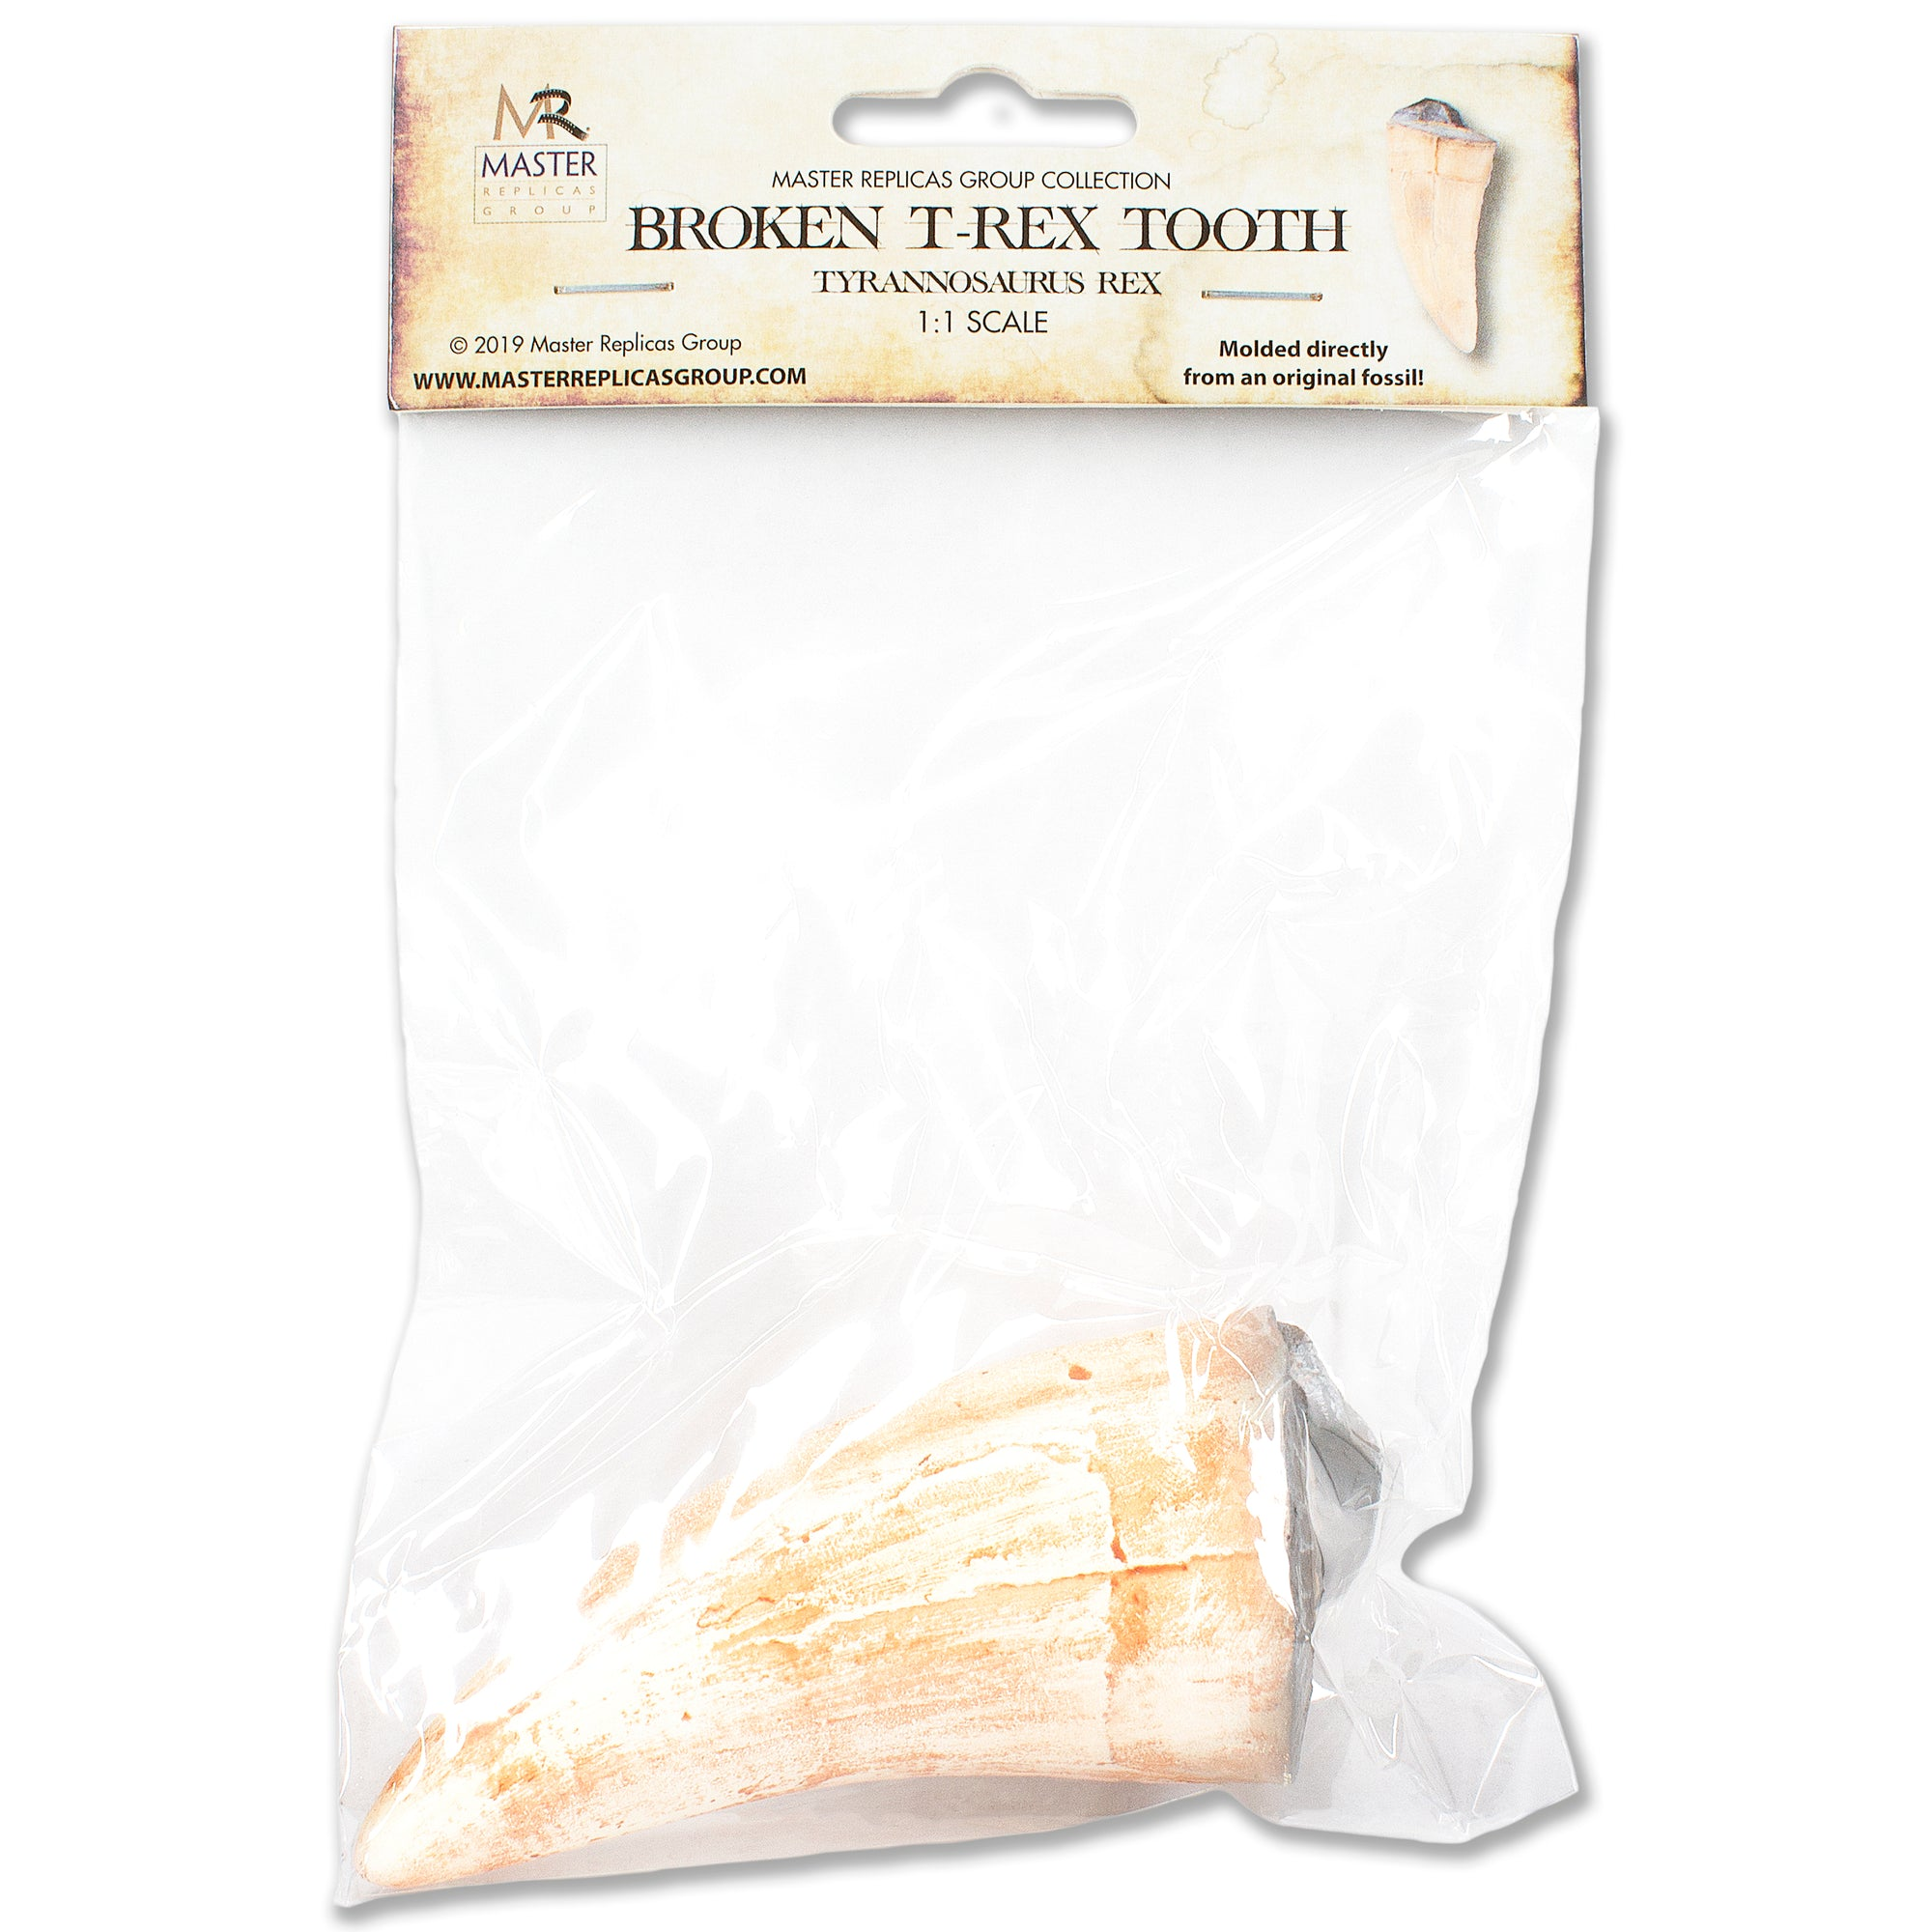 T-Rex Broken Tooth Replica Fossil Educational Version by Master Replicas Group